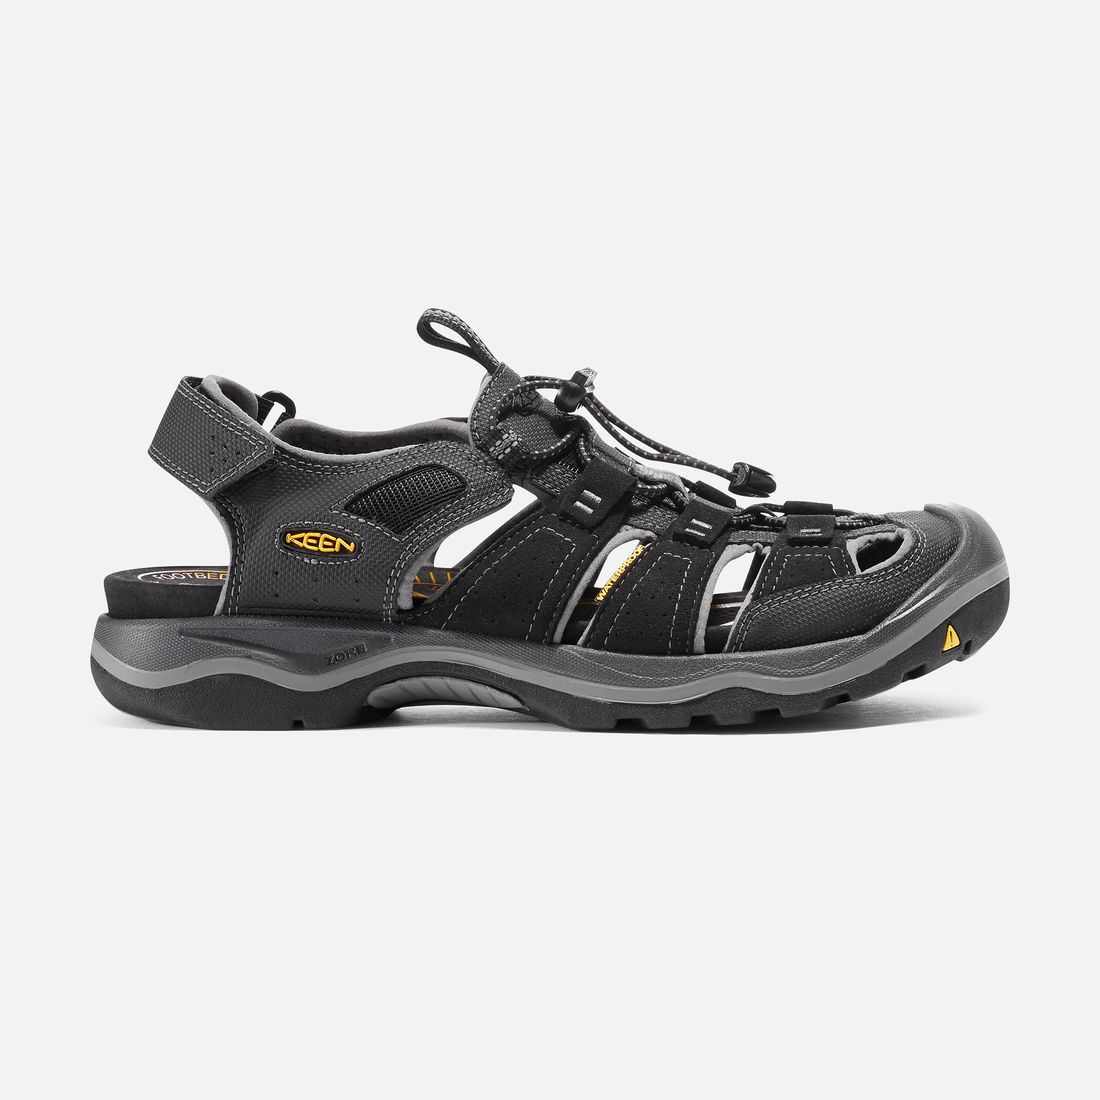 Keen Men's Rialto H2; Picture 2 of 2